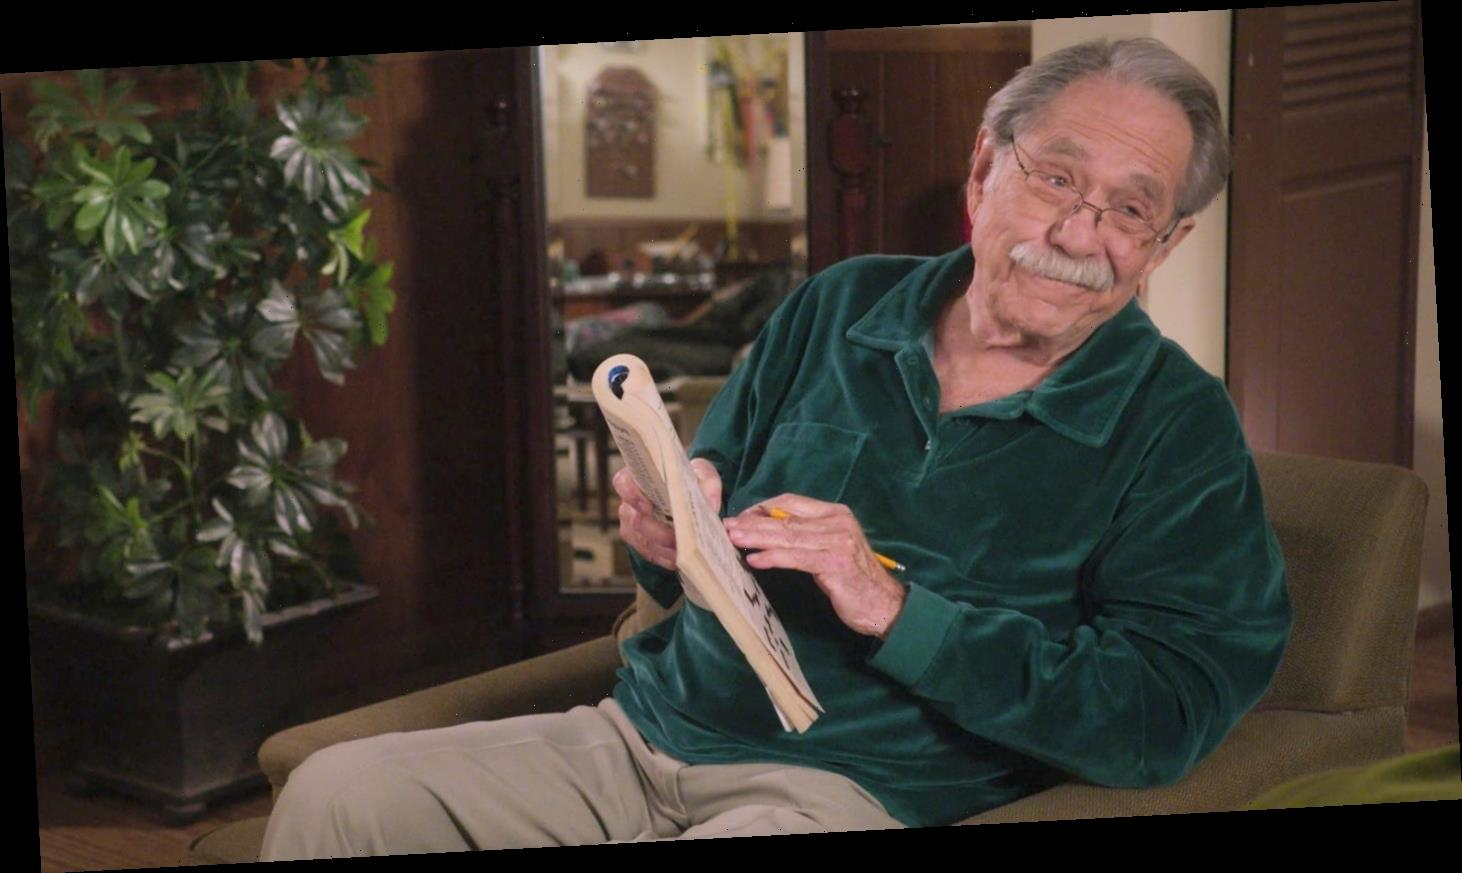 George Segal, longtime movie star and grandfather on ABC's 'The Goldbergs,' dies at 87